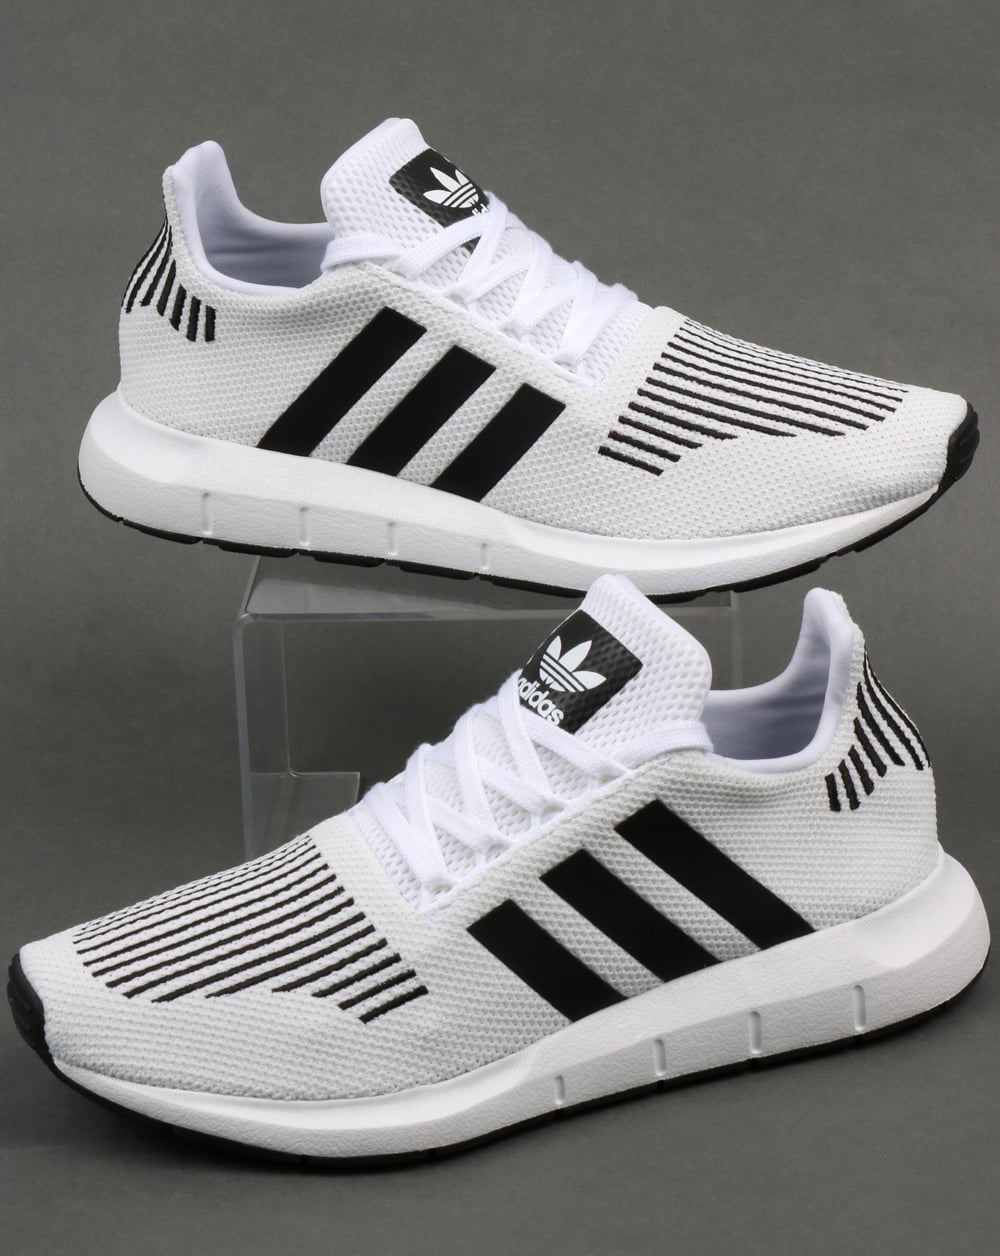 Black White Clipart R Large Pic: Adidas Swift Run Trainers White/Black/Grey,runners,prime